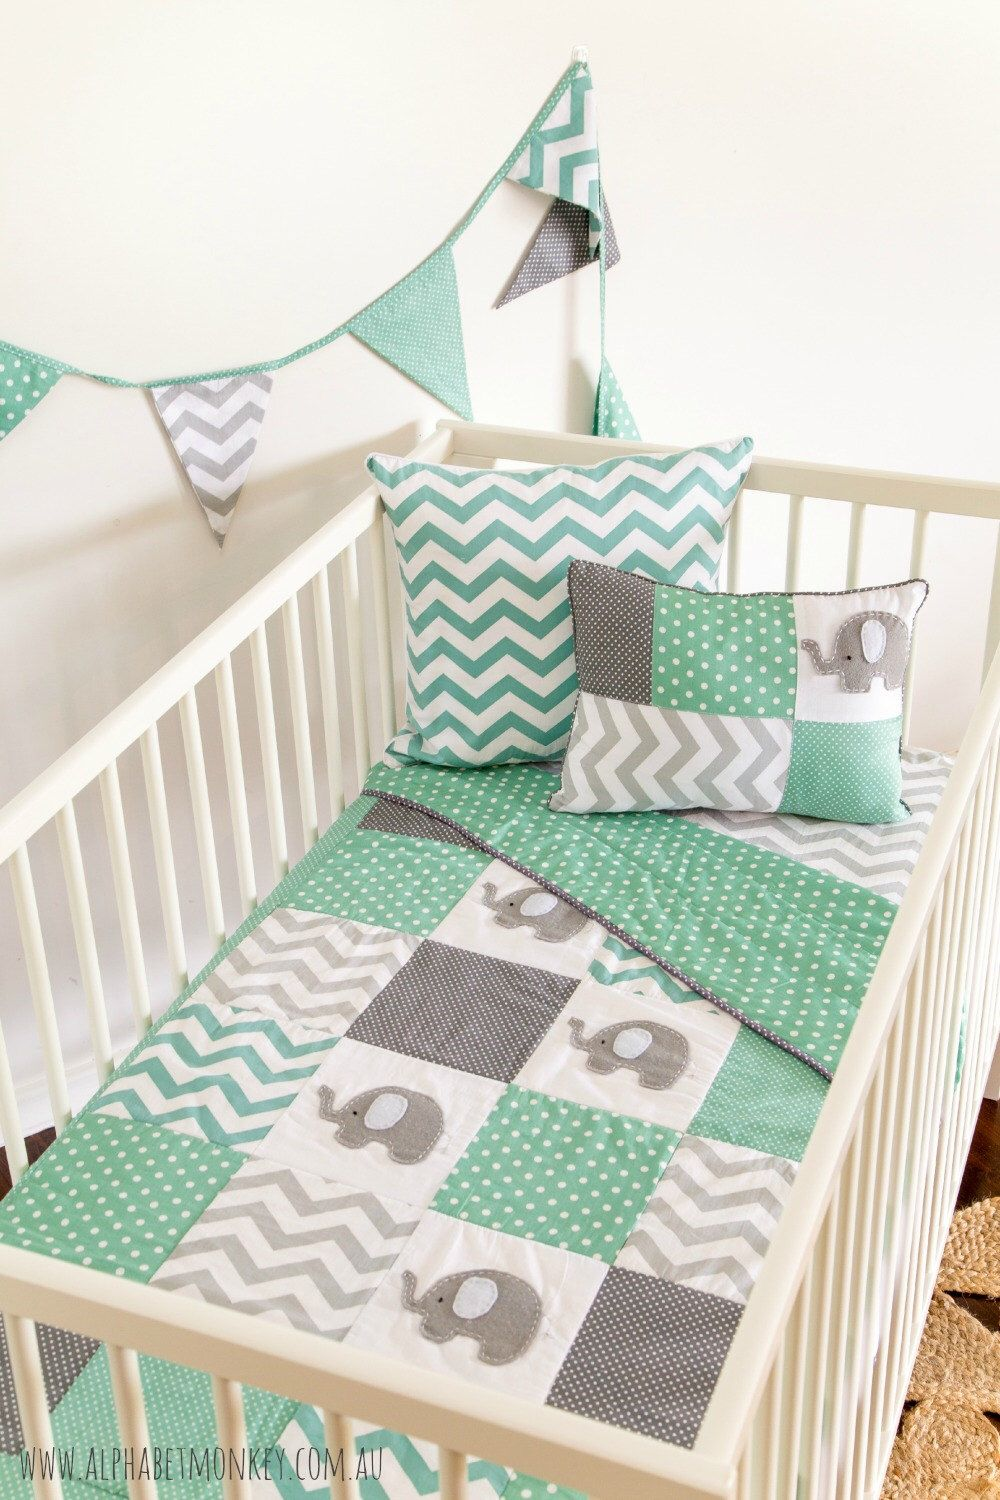 Preorder pachy the elephant baby crib quilt in mint and gray by